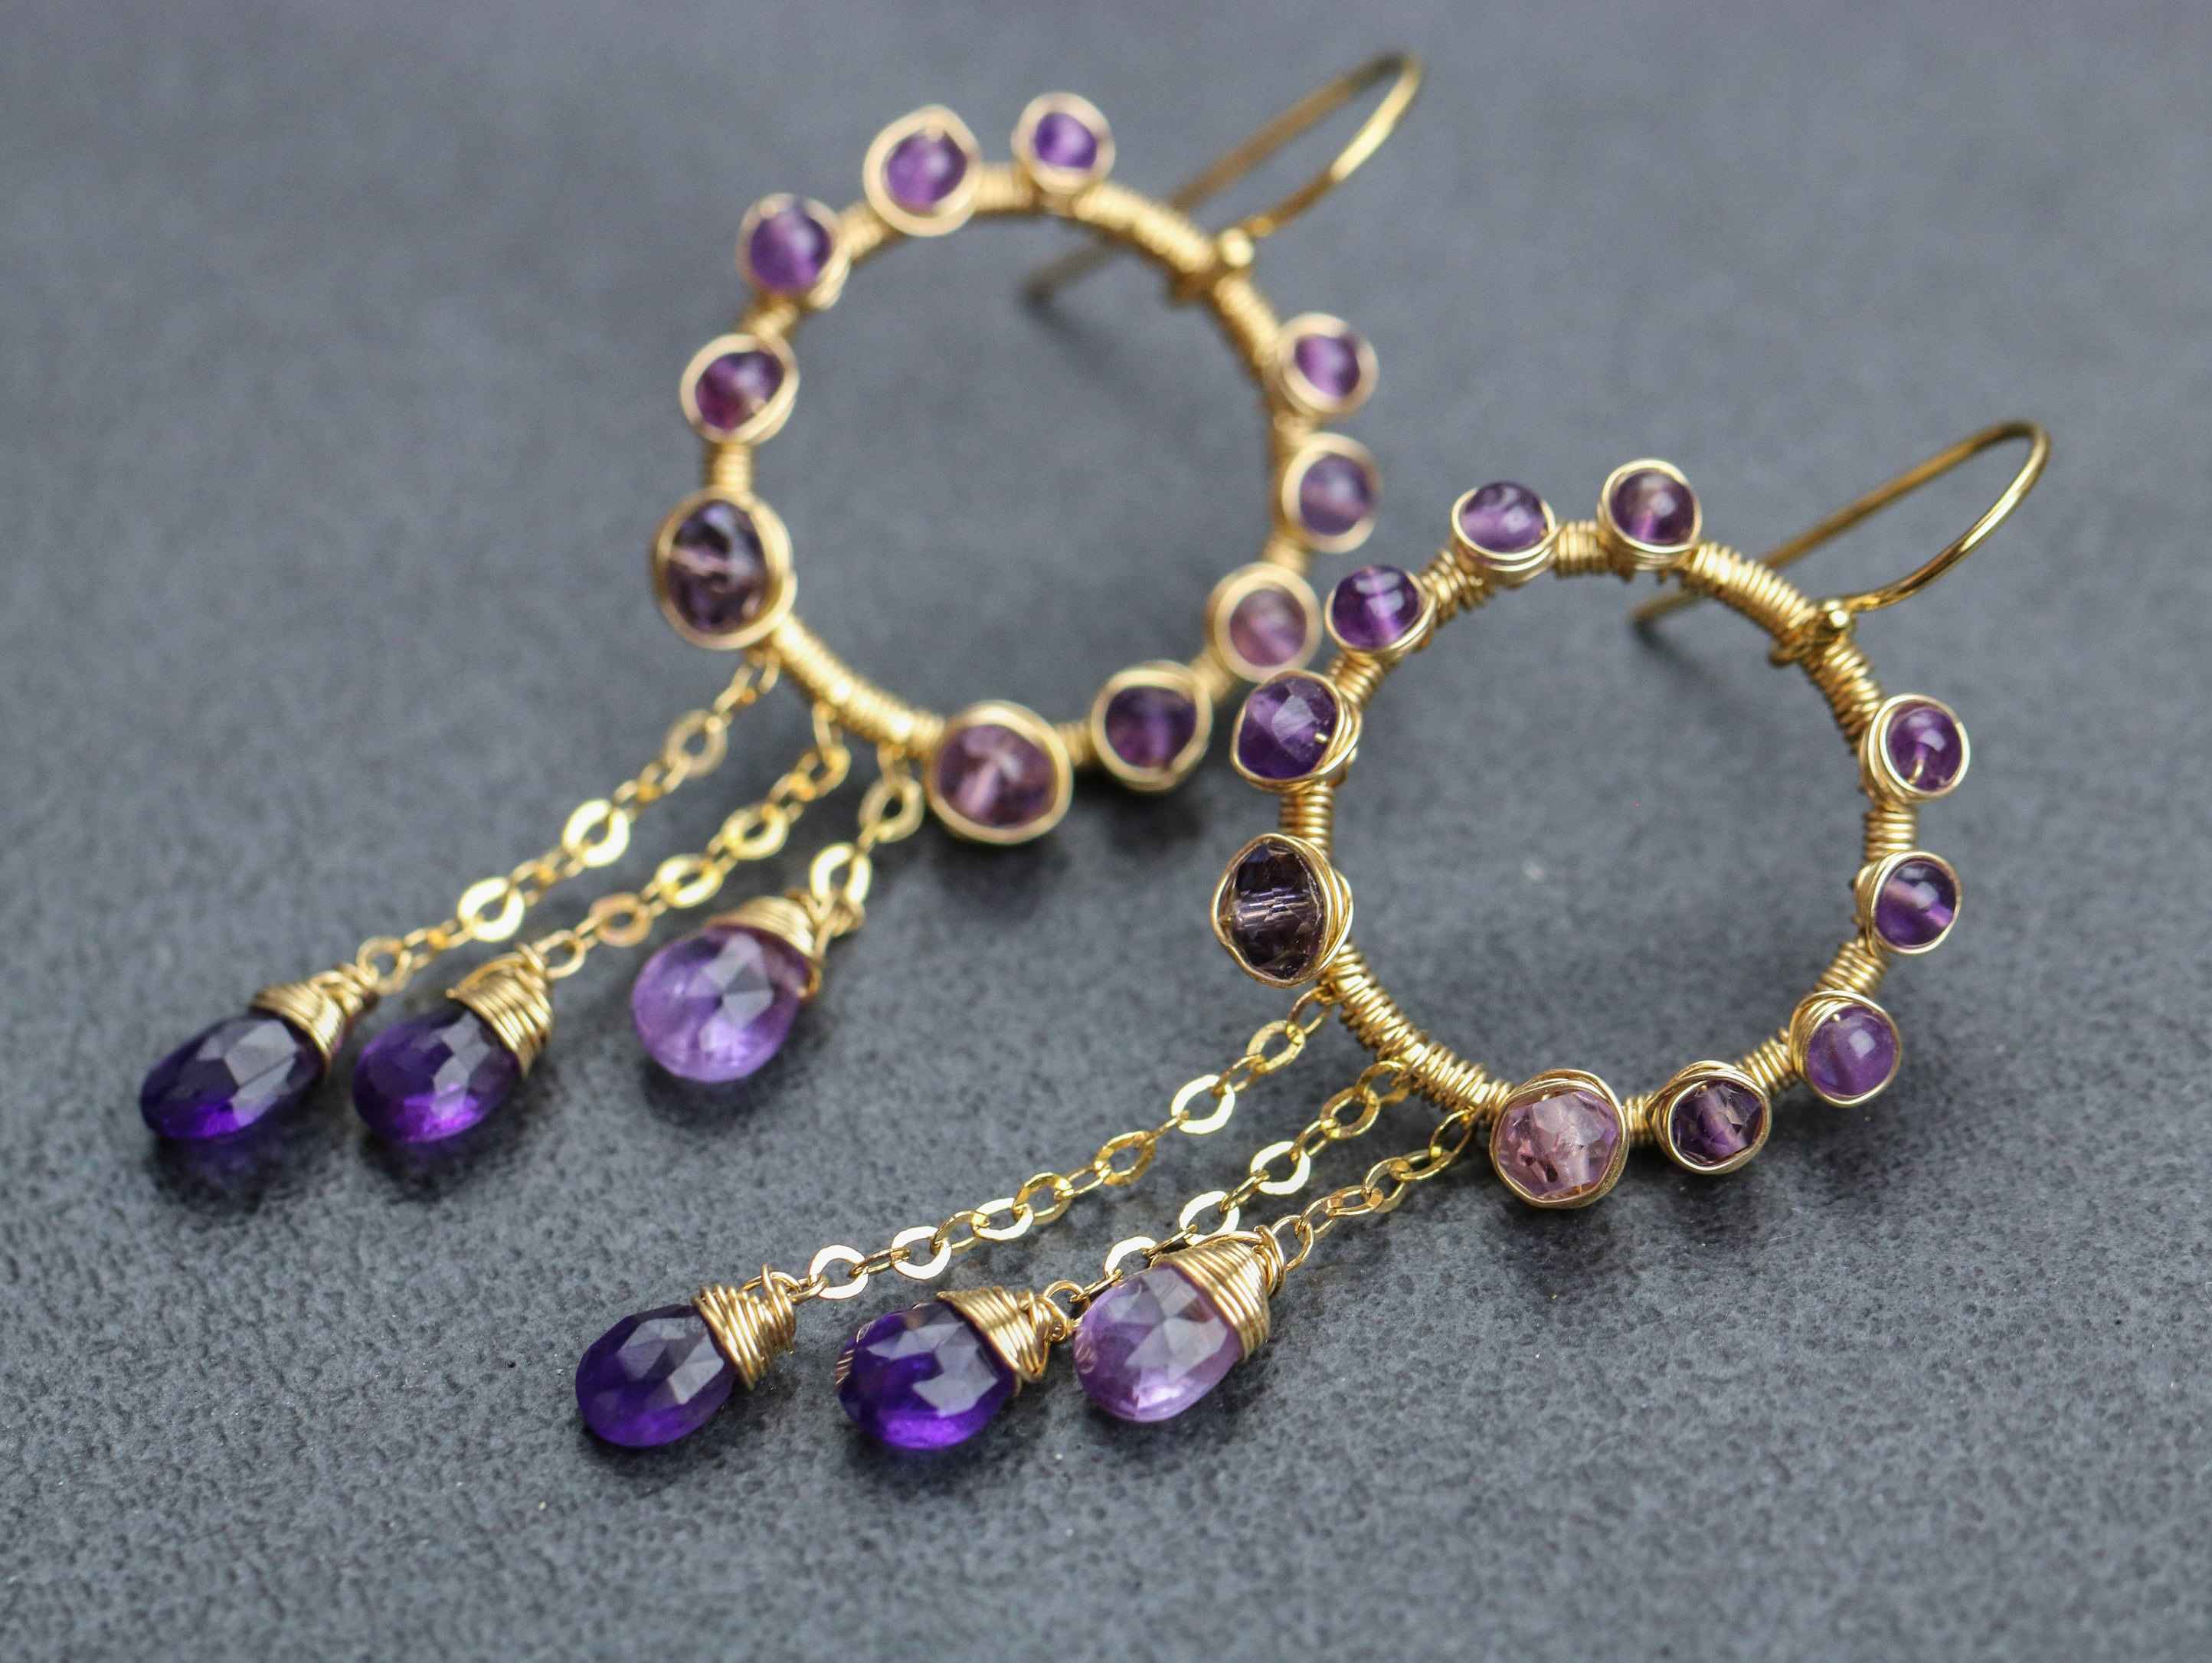 from jewelry nature luxury stone rhinestones long vintage purple ynb drop big party earrings women item womens in